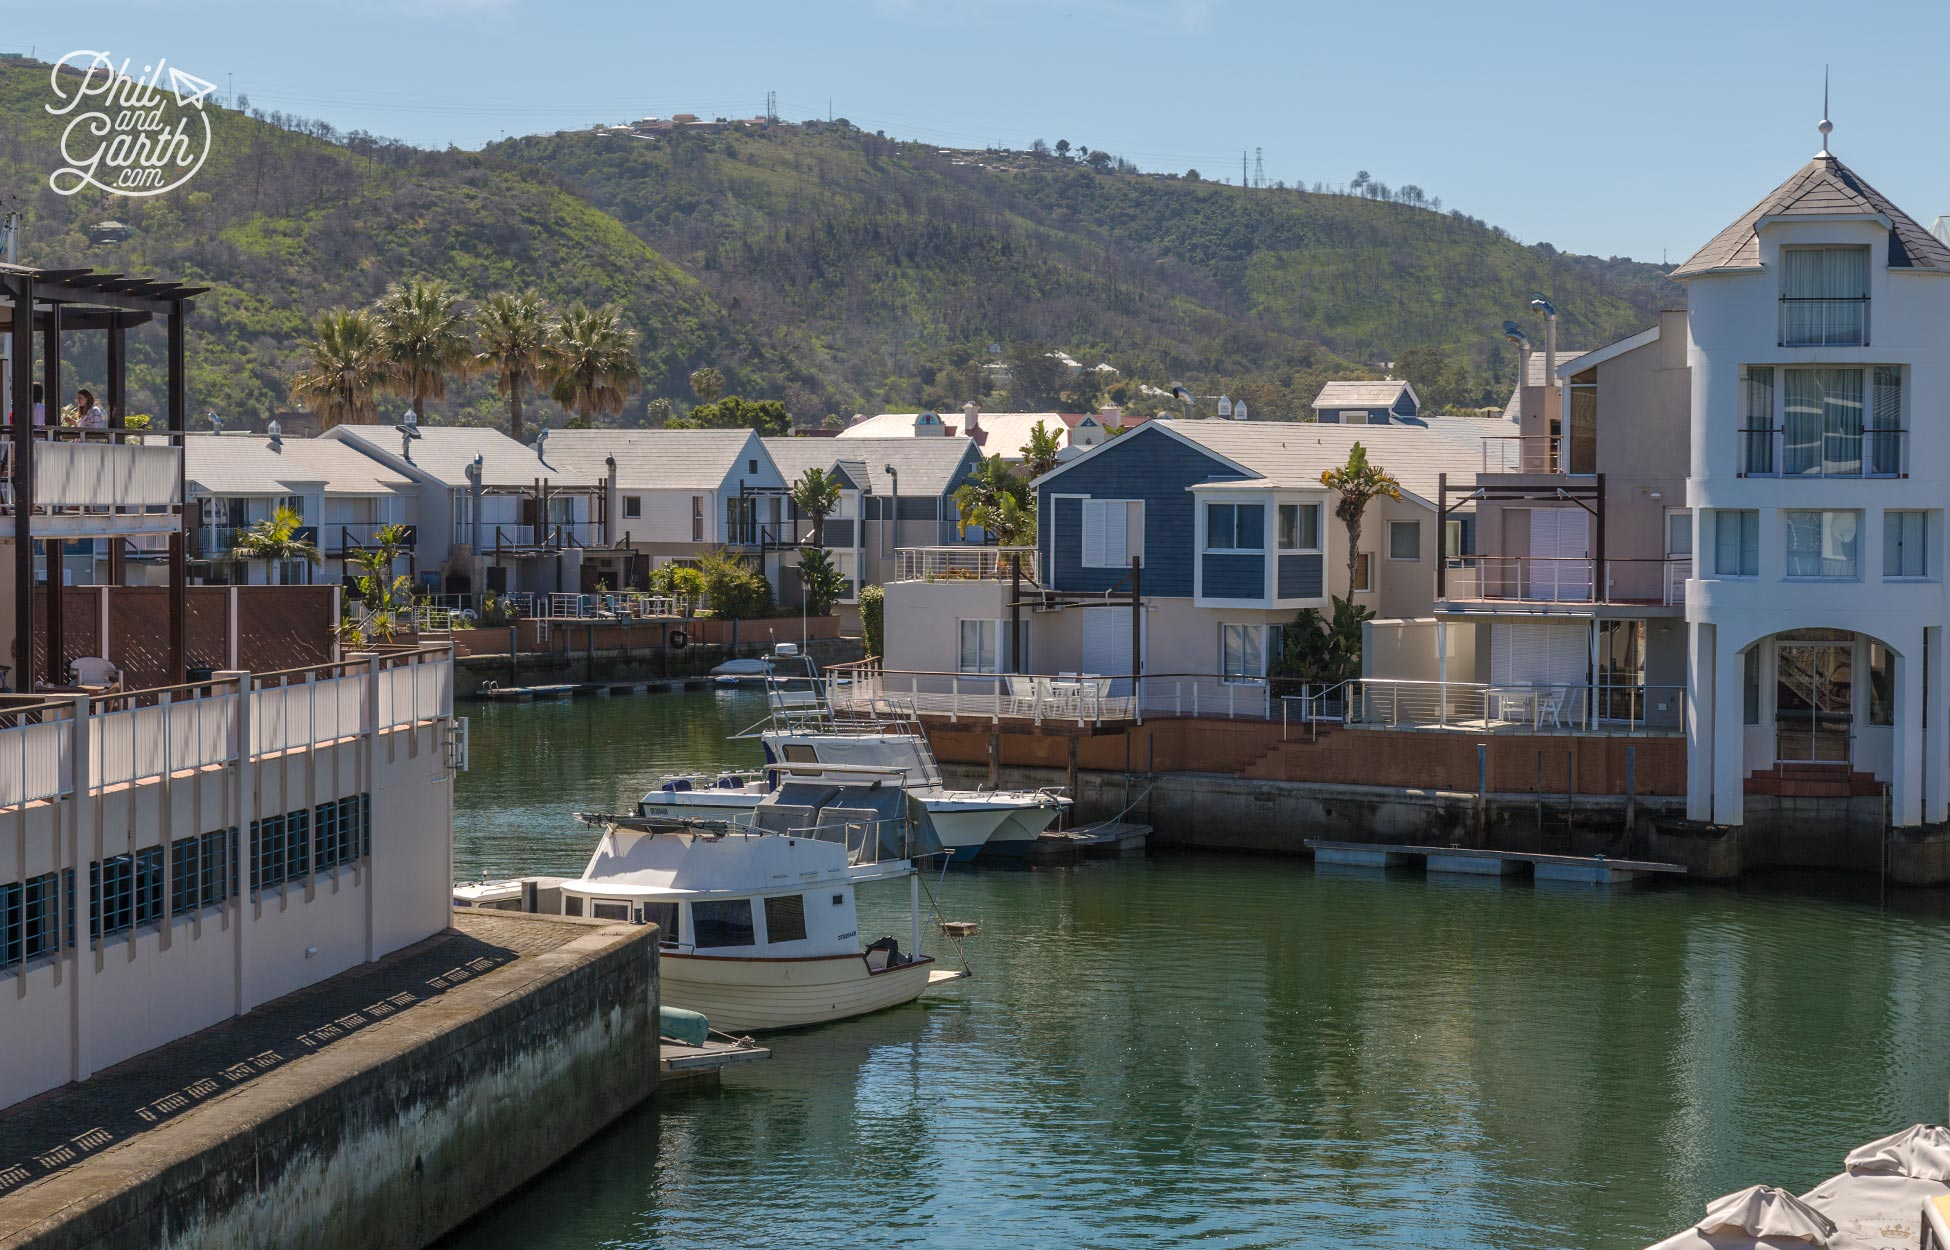 Some nice waterfront homes